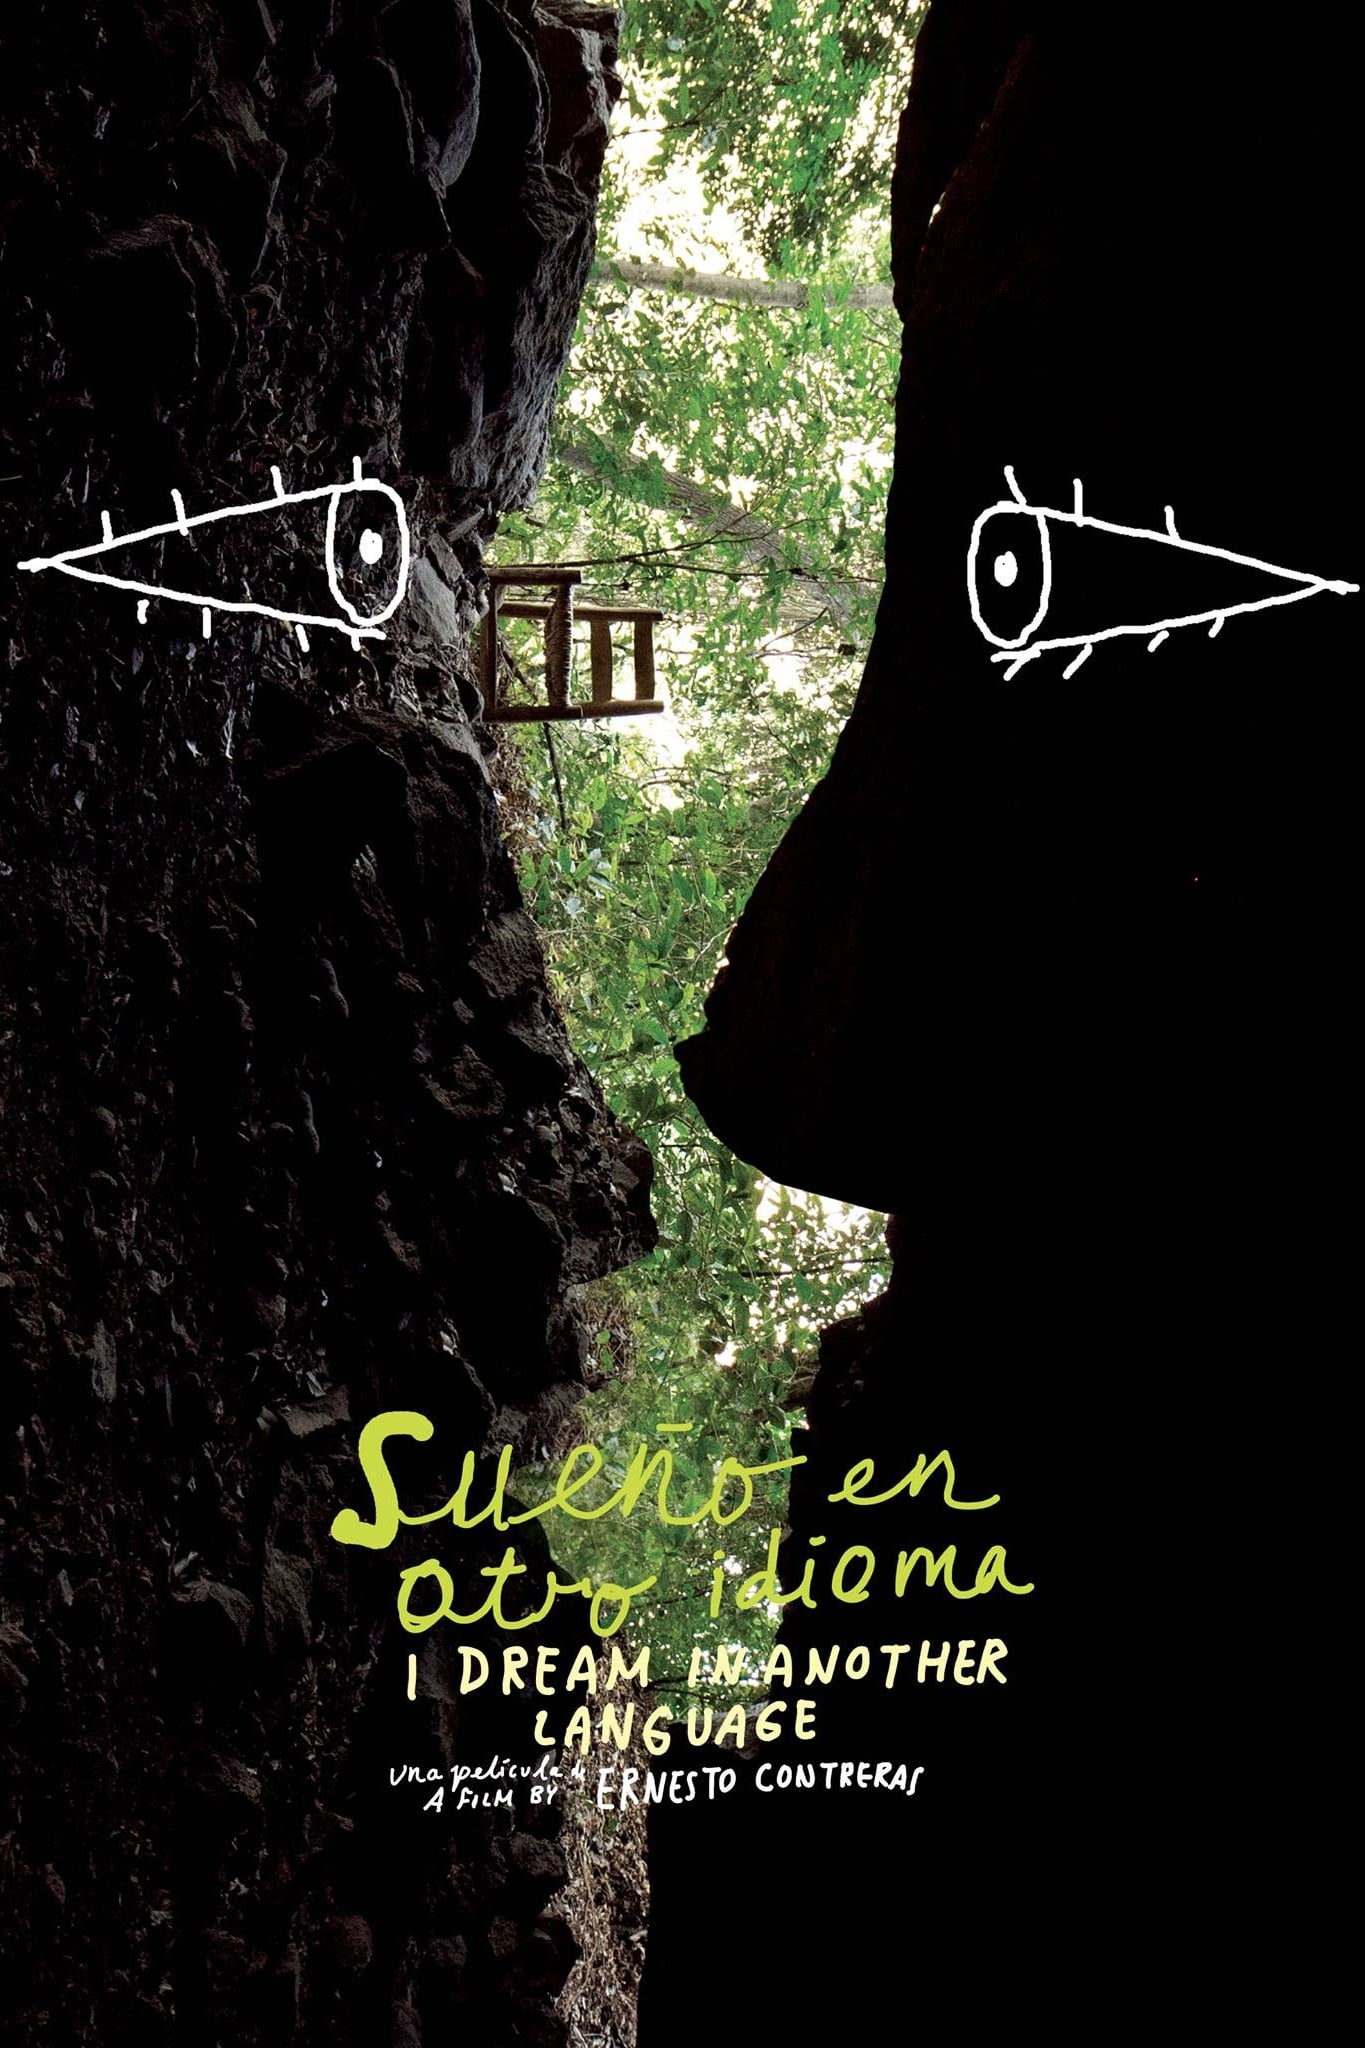 image for I Dream in Another Language